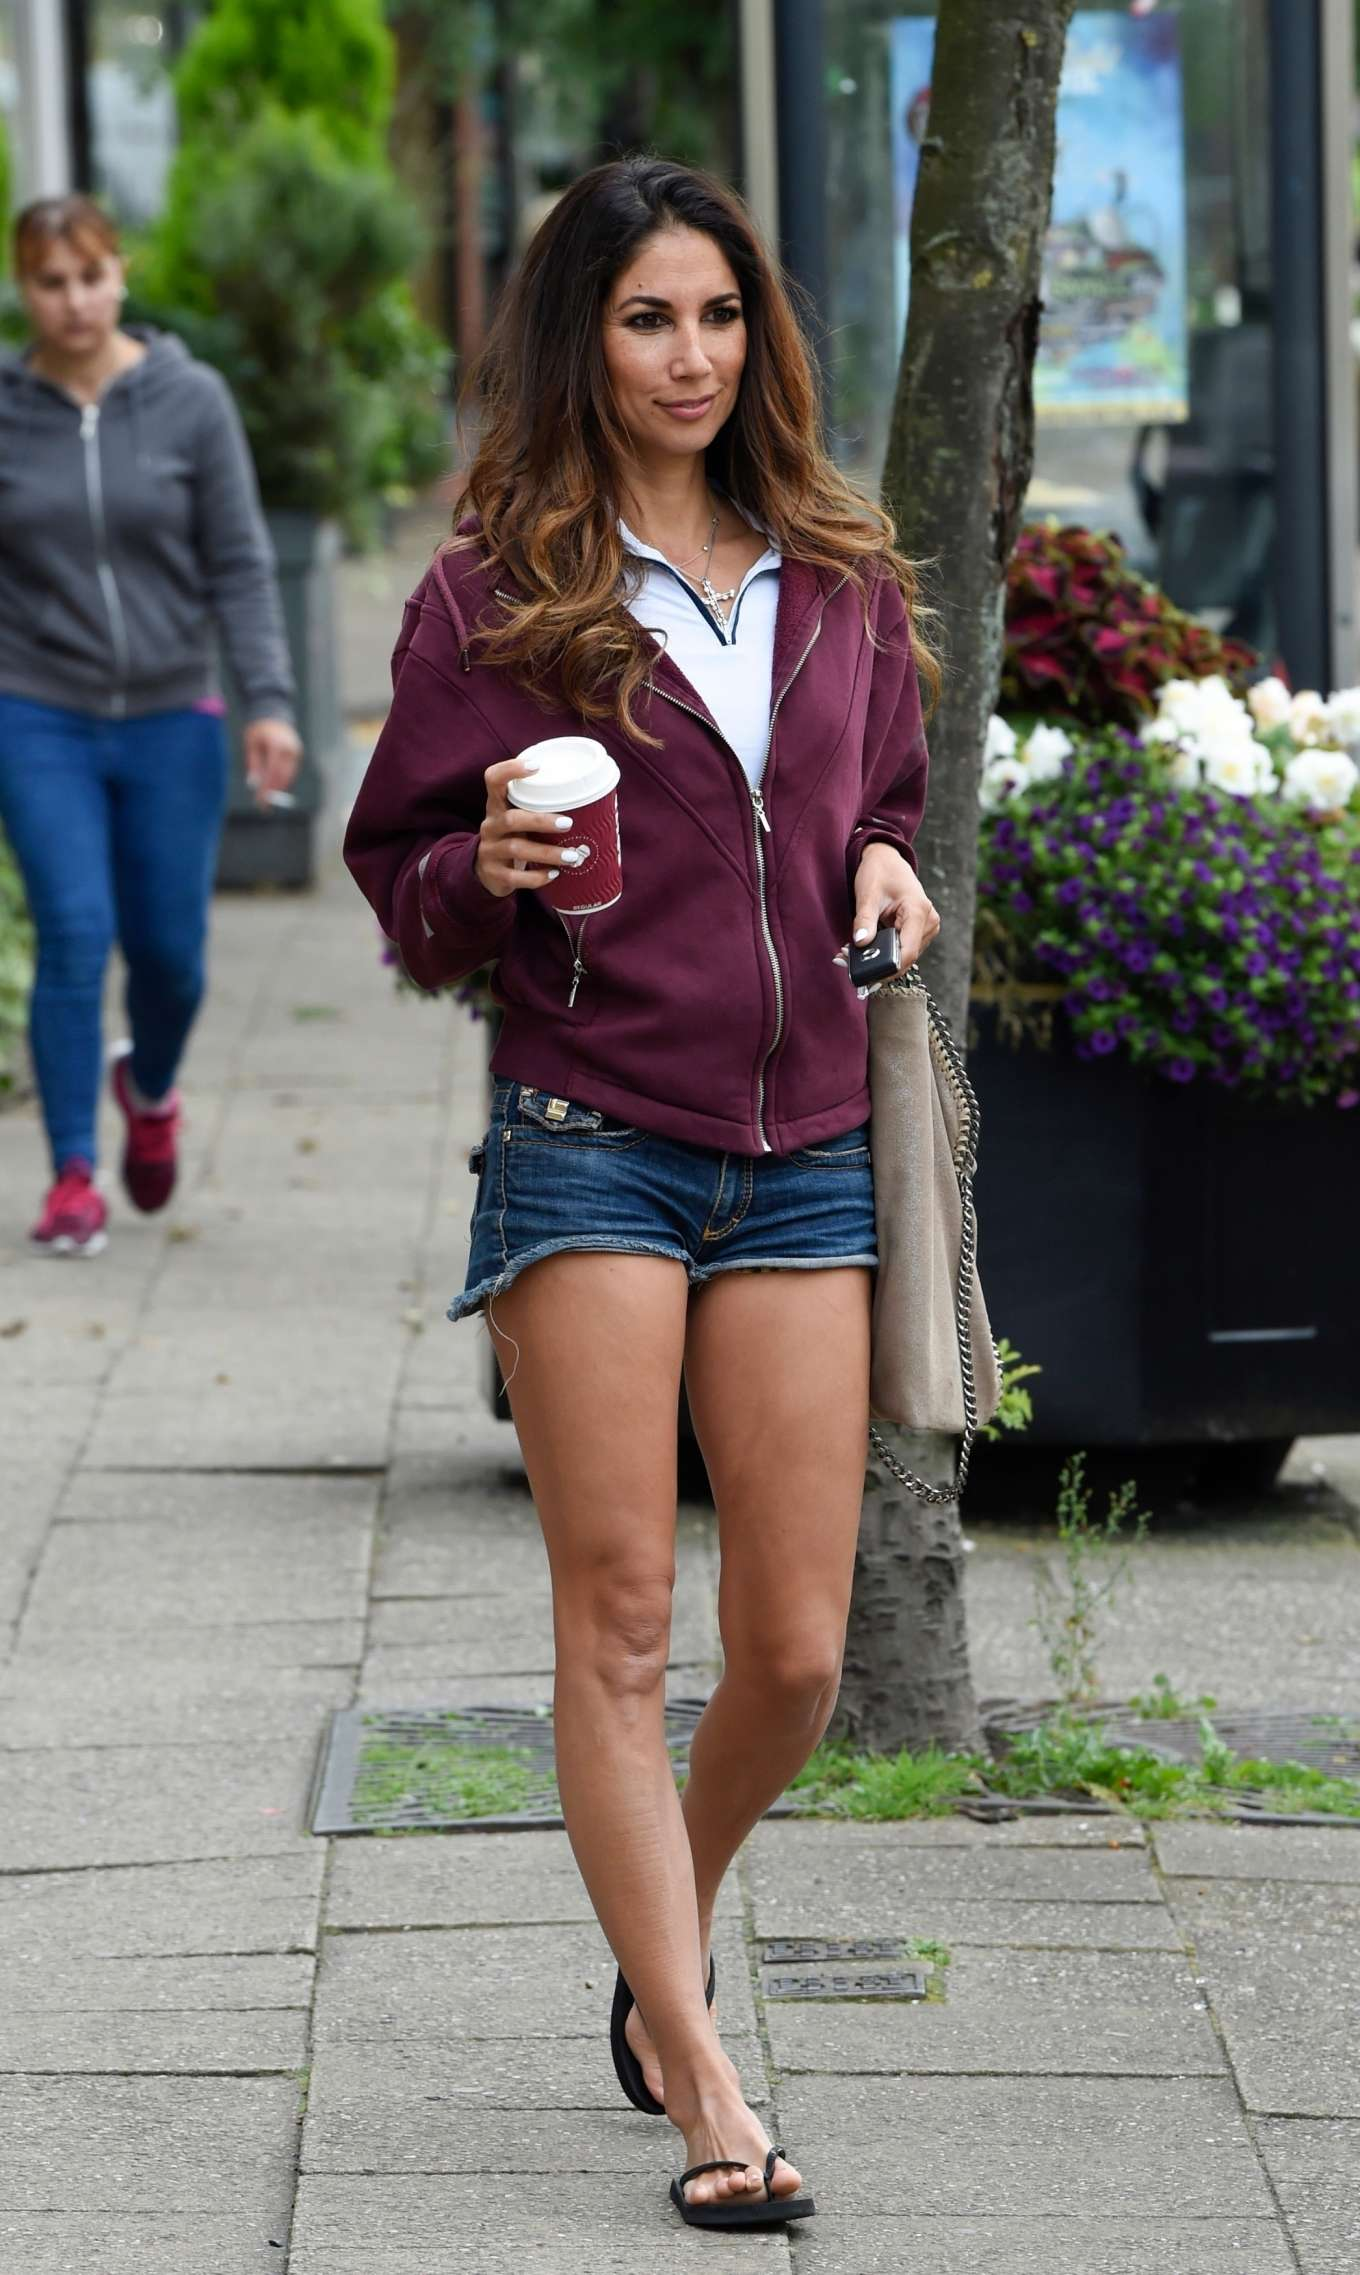 Leilani Dowding in Denim Shorts - Out in Cheshire